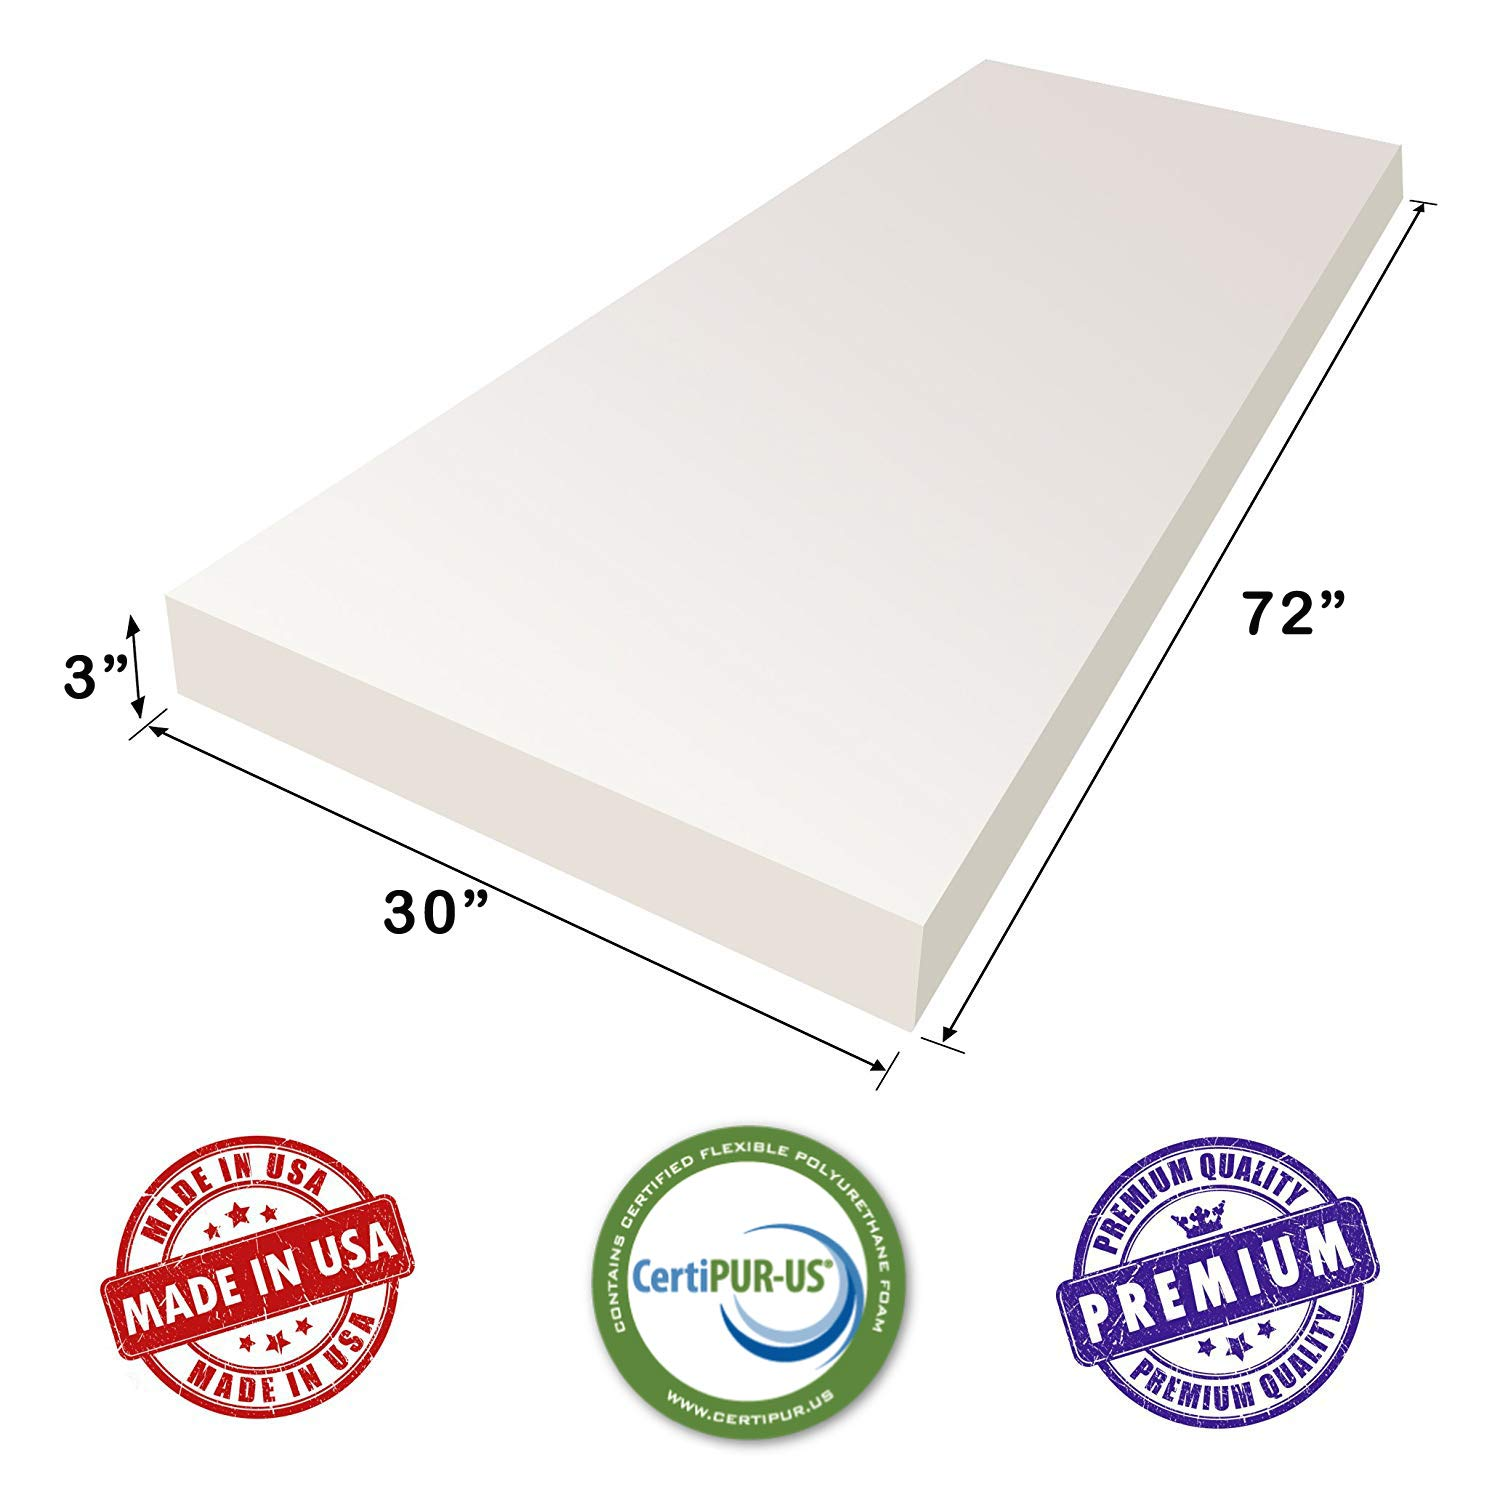 AK TRADING CO. 3'' H X 30'' W x 72''L Upholstery Foam Cushion CertiPUR-US Certified. (Seat Replacement, Upholstery Sheet, Foam Padding) by AK TRADING CO.